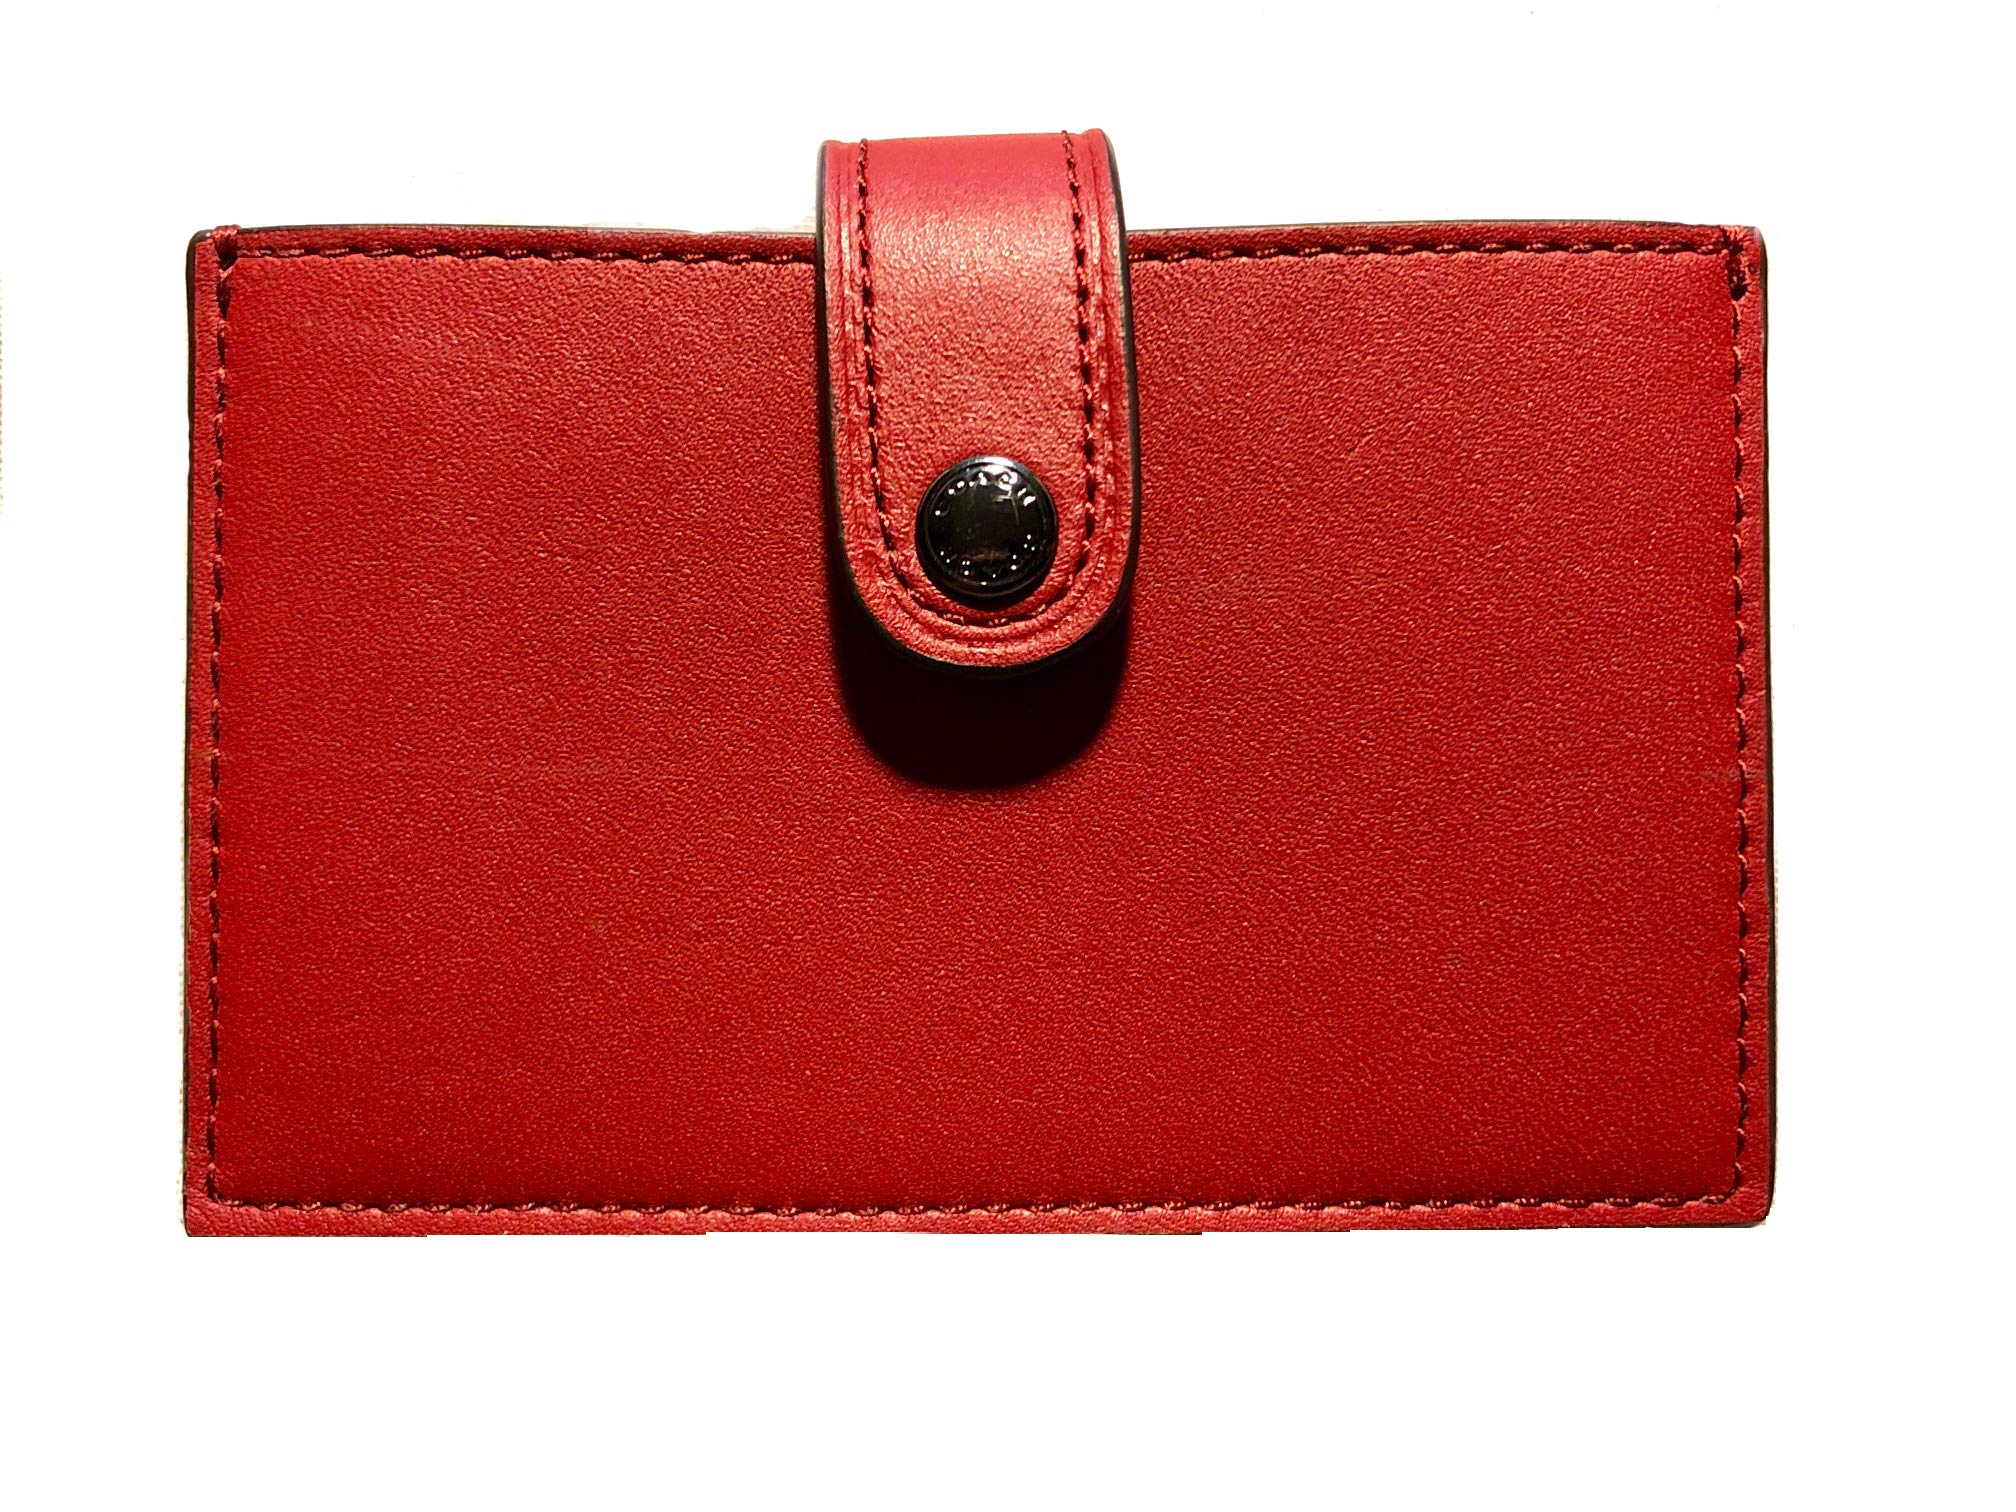 Coach Colorblock Accordian Card Case Holder - #F68393 - Dark Red by Coach